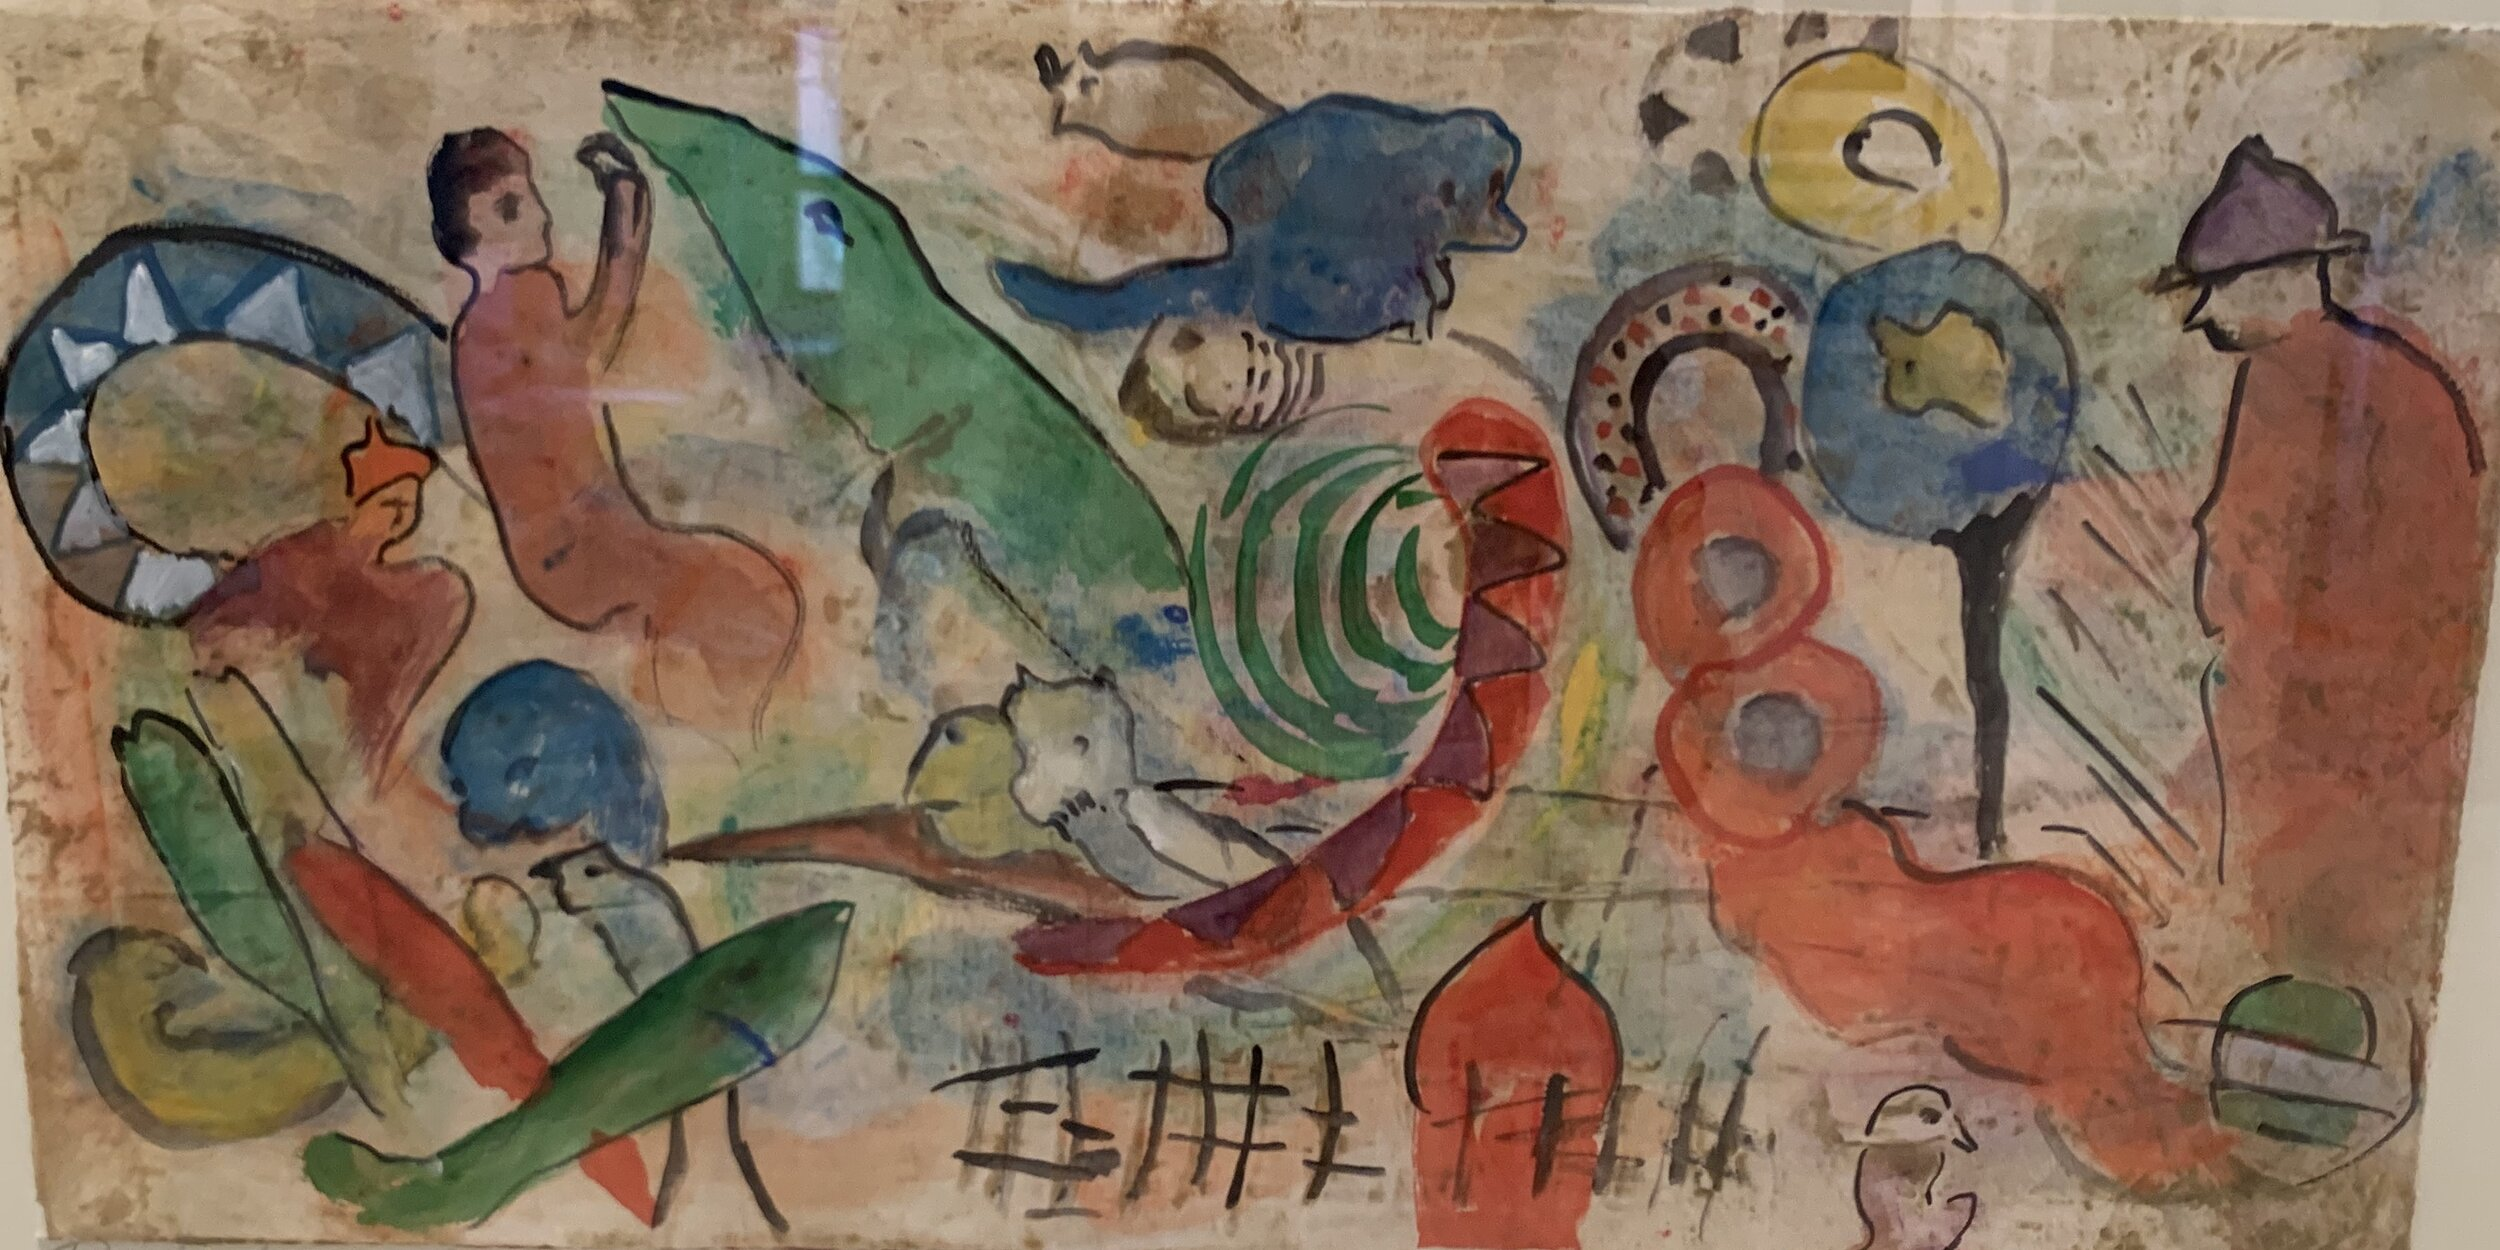 """Riddling Legends Series III #6, Watercolor Monotype, 25""""x33""""  Horizontal monotype watercolor painting with simplified shapes of humans, animals and organic shapes on tan background"""